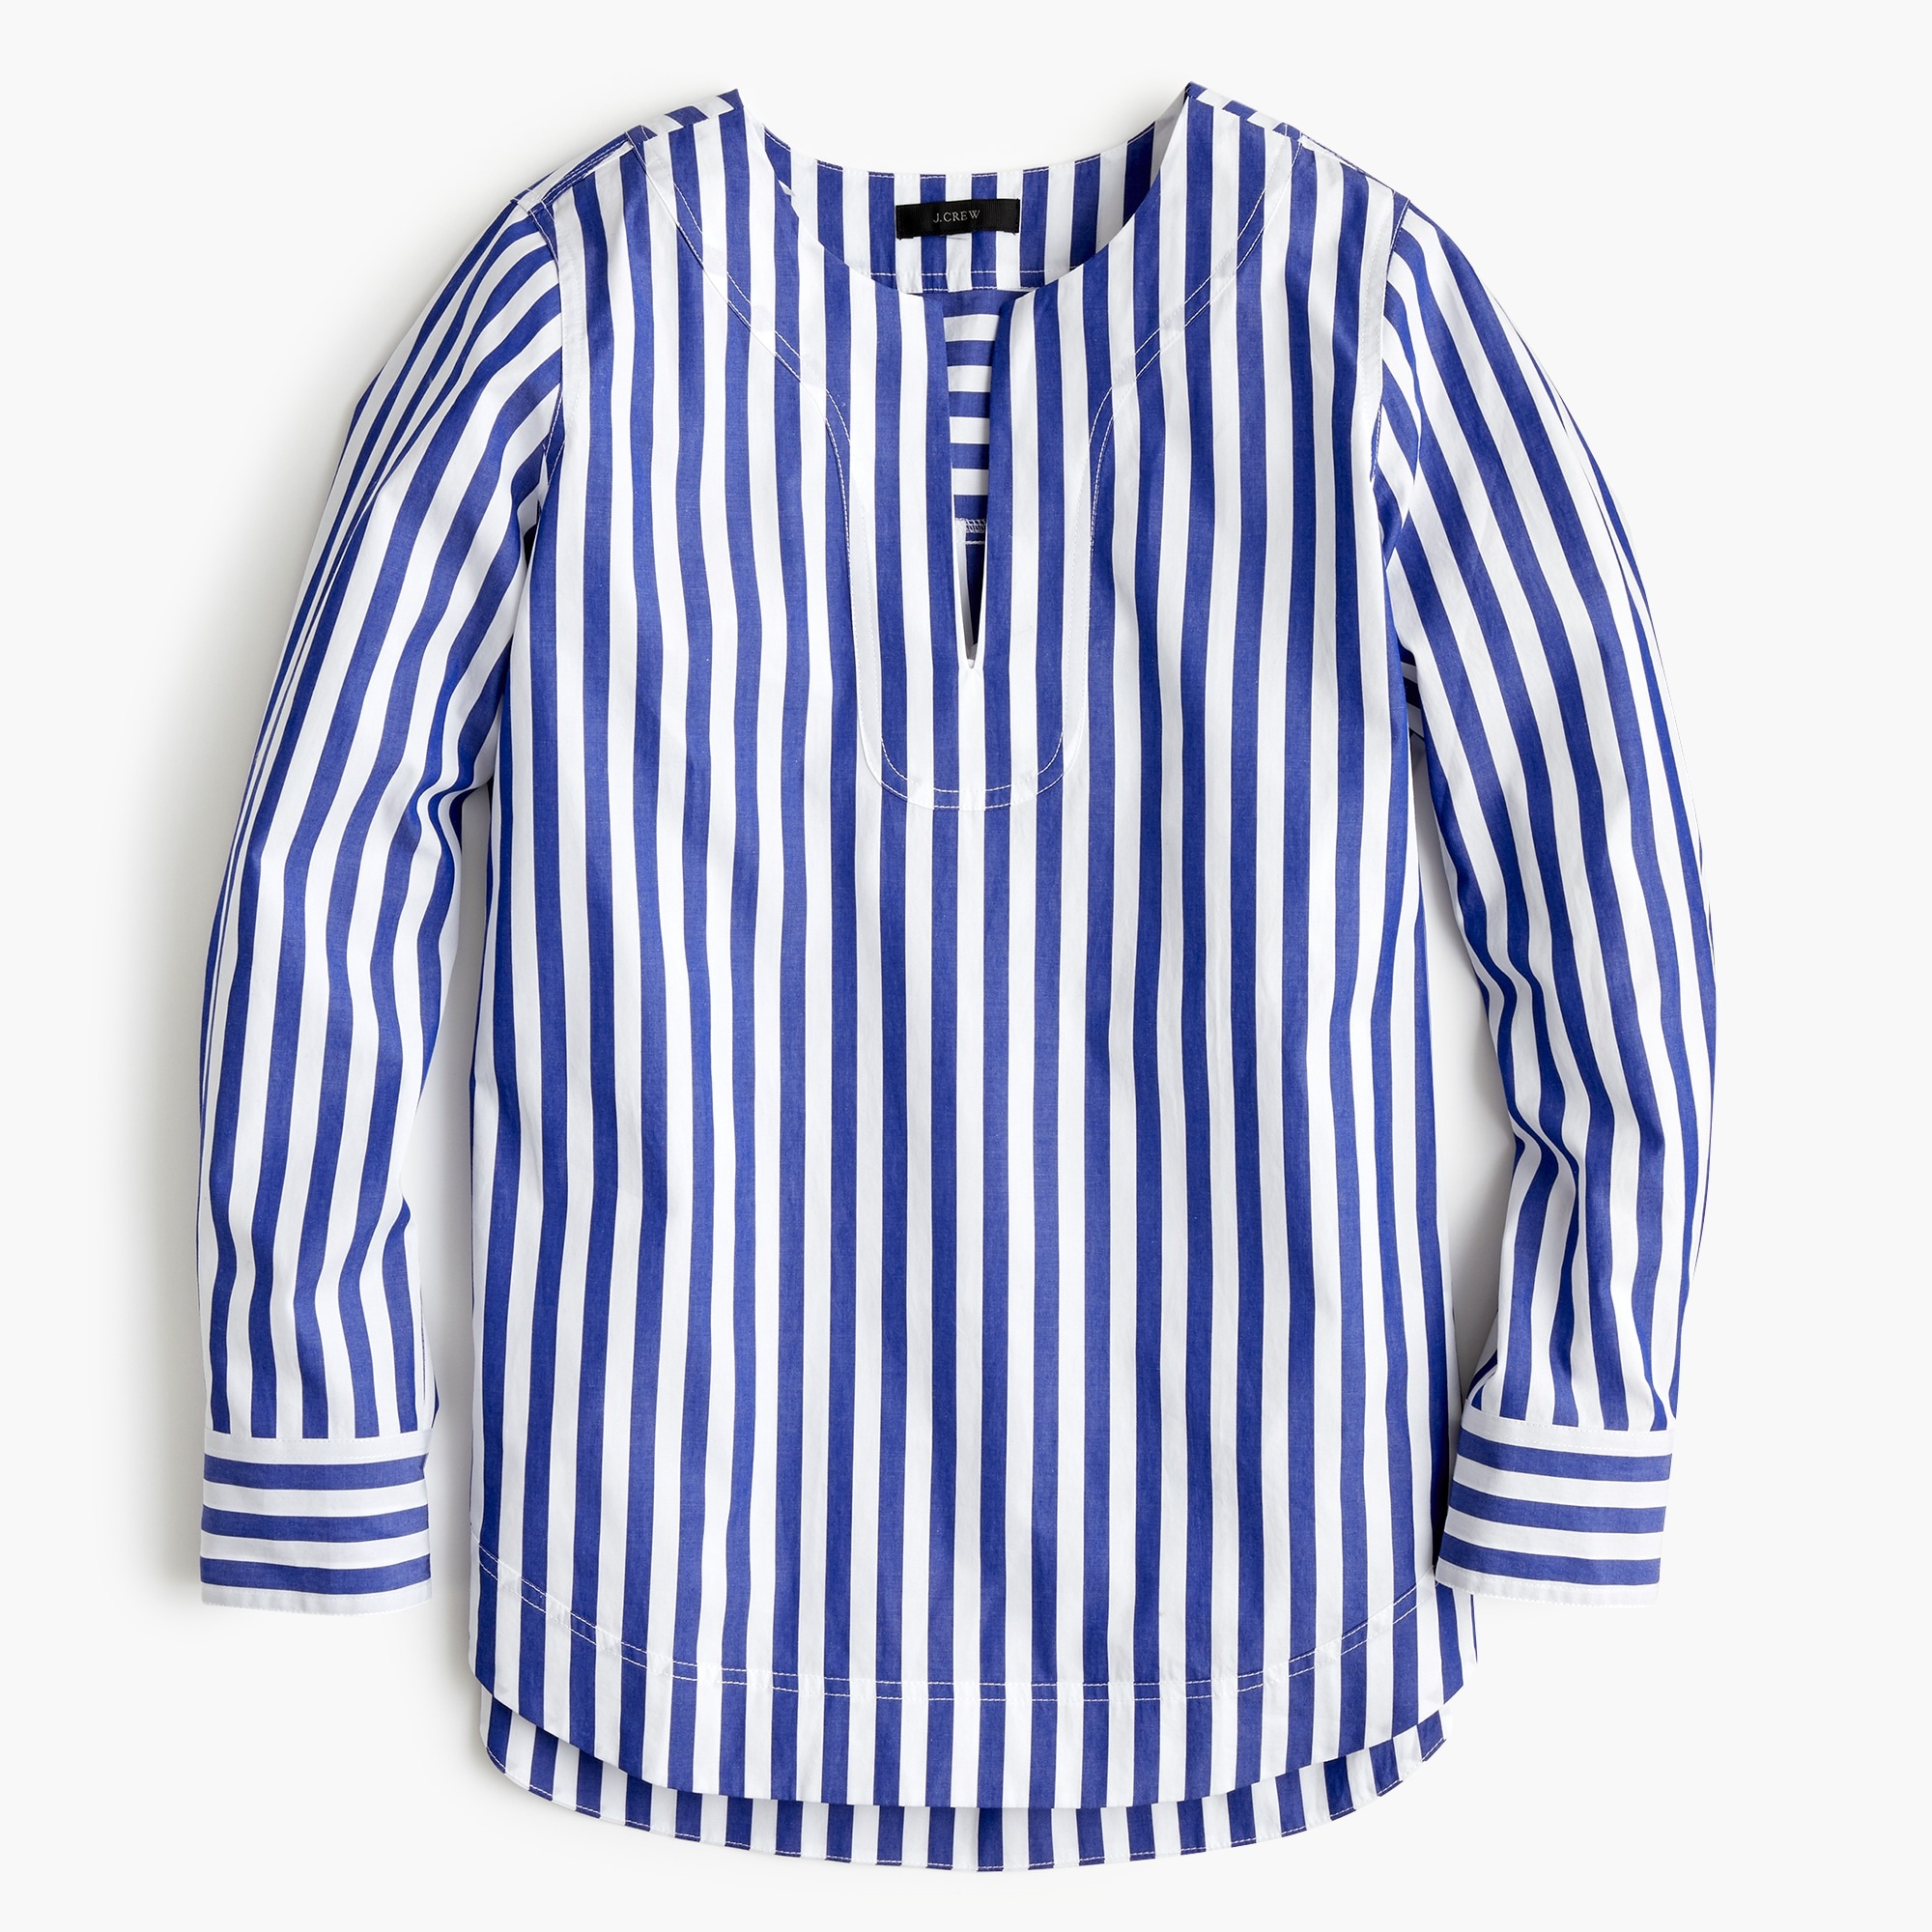 Petite tunic in bold stripe cotton poplin